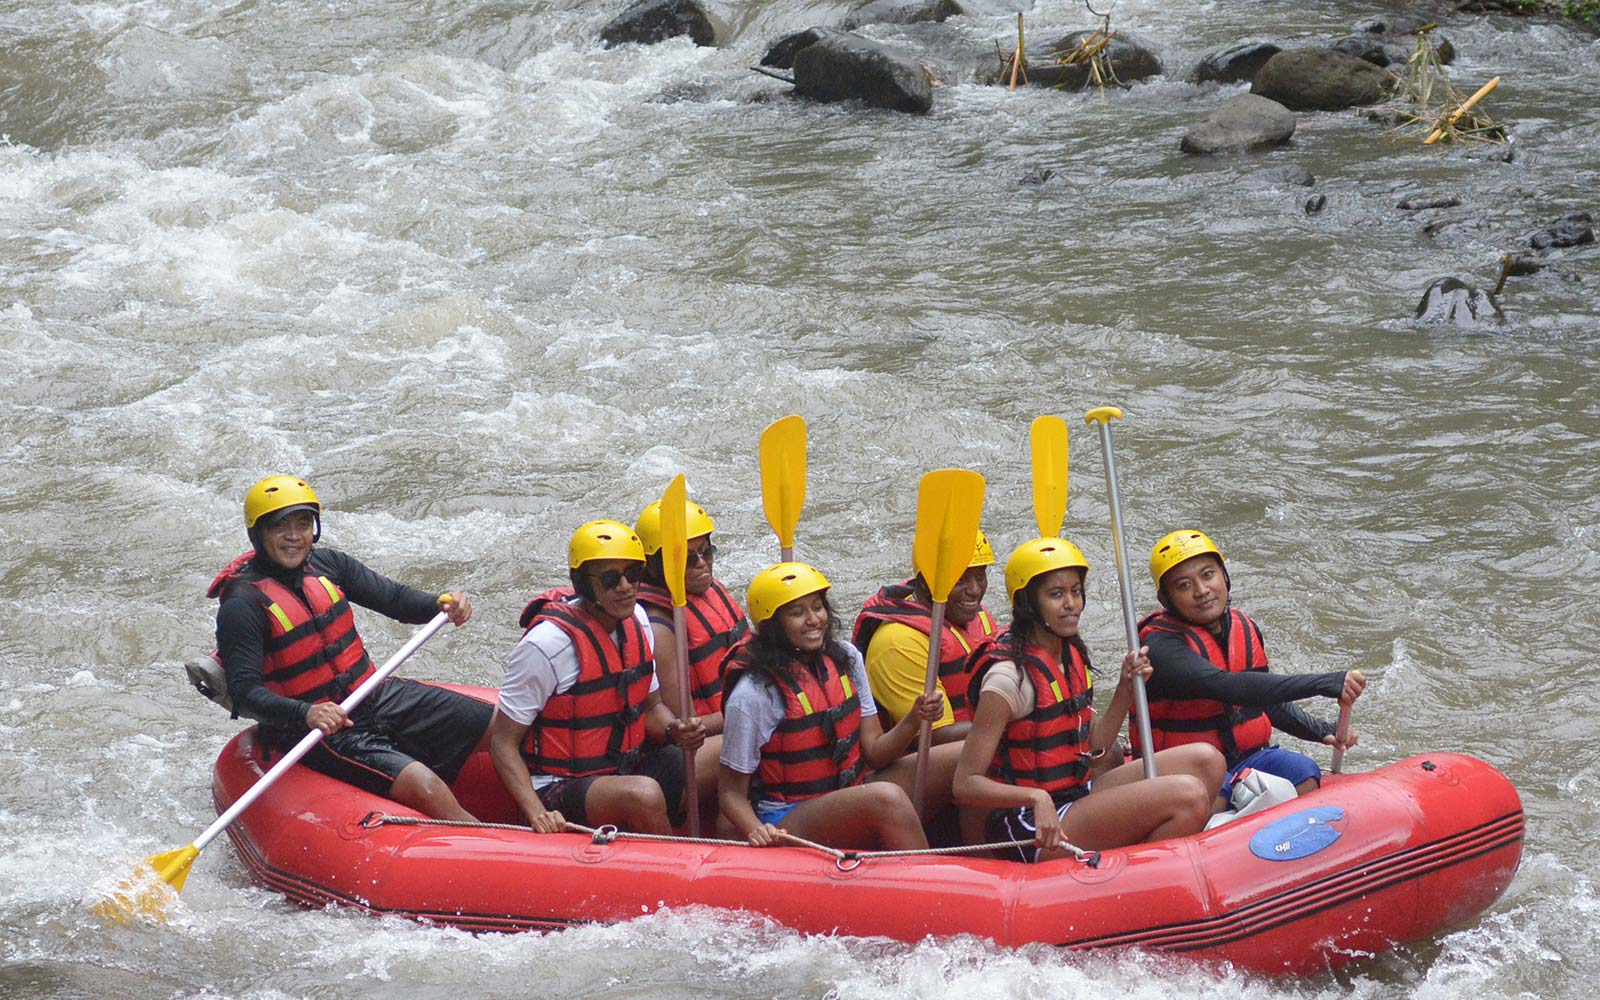 Former US president Barack Obama Michelle Sasha Malia rafting at Bongkasa Village in Badung on Bali island Indonesia